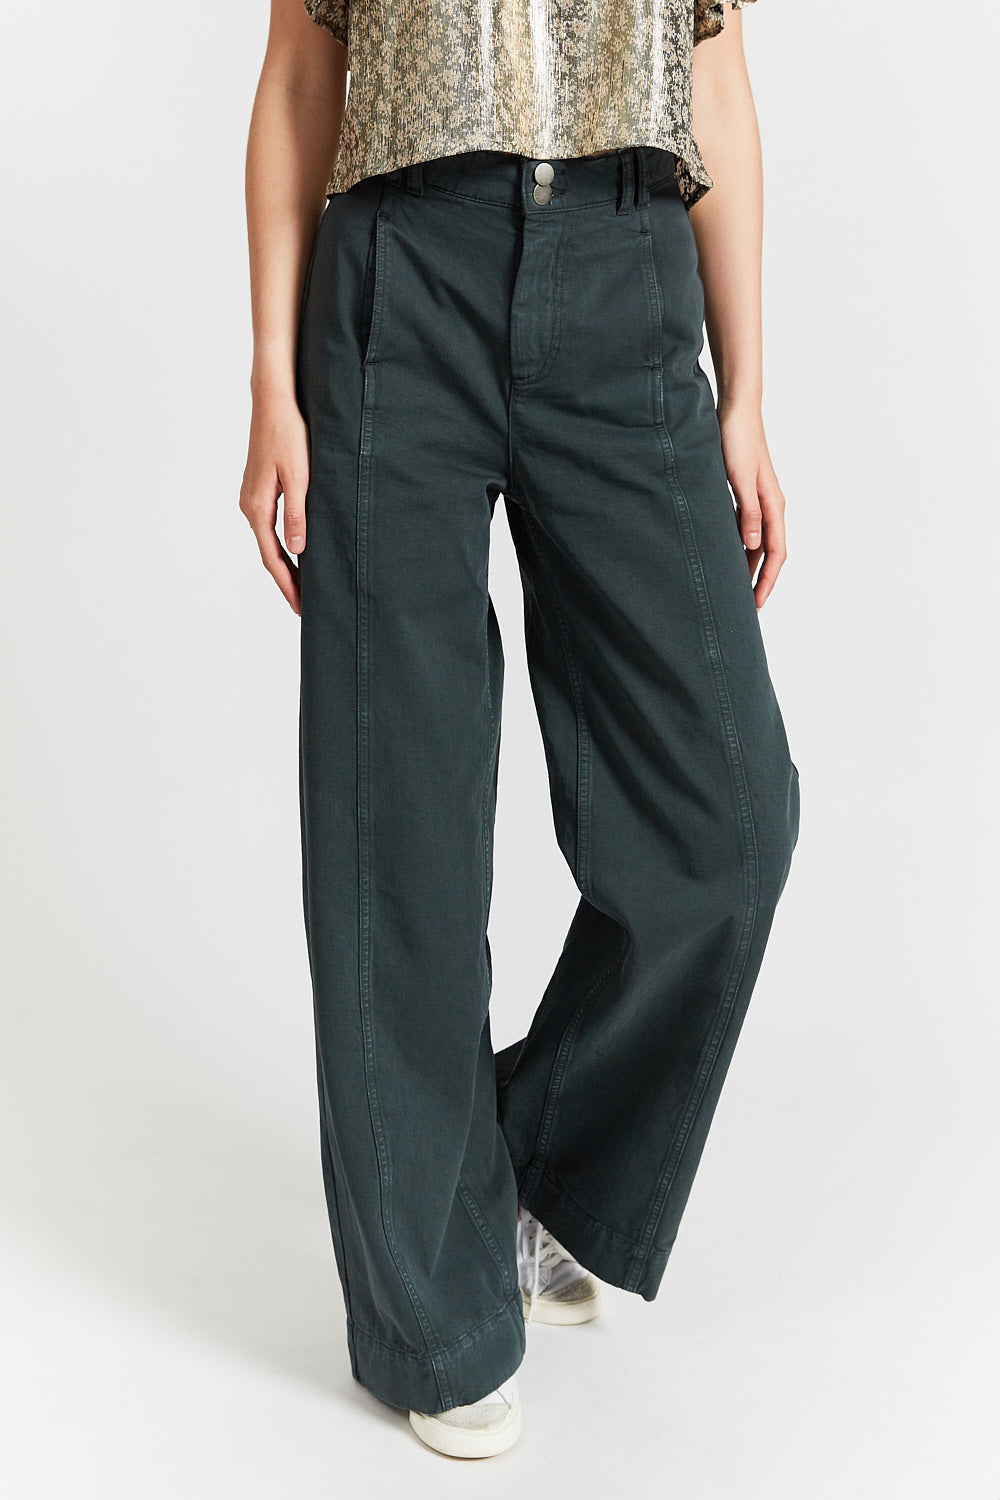 """JAPONICA"" TROUSERS EVENING"